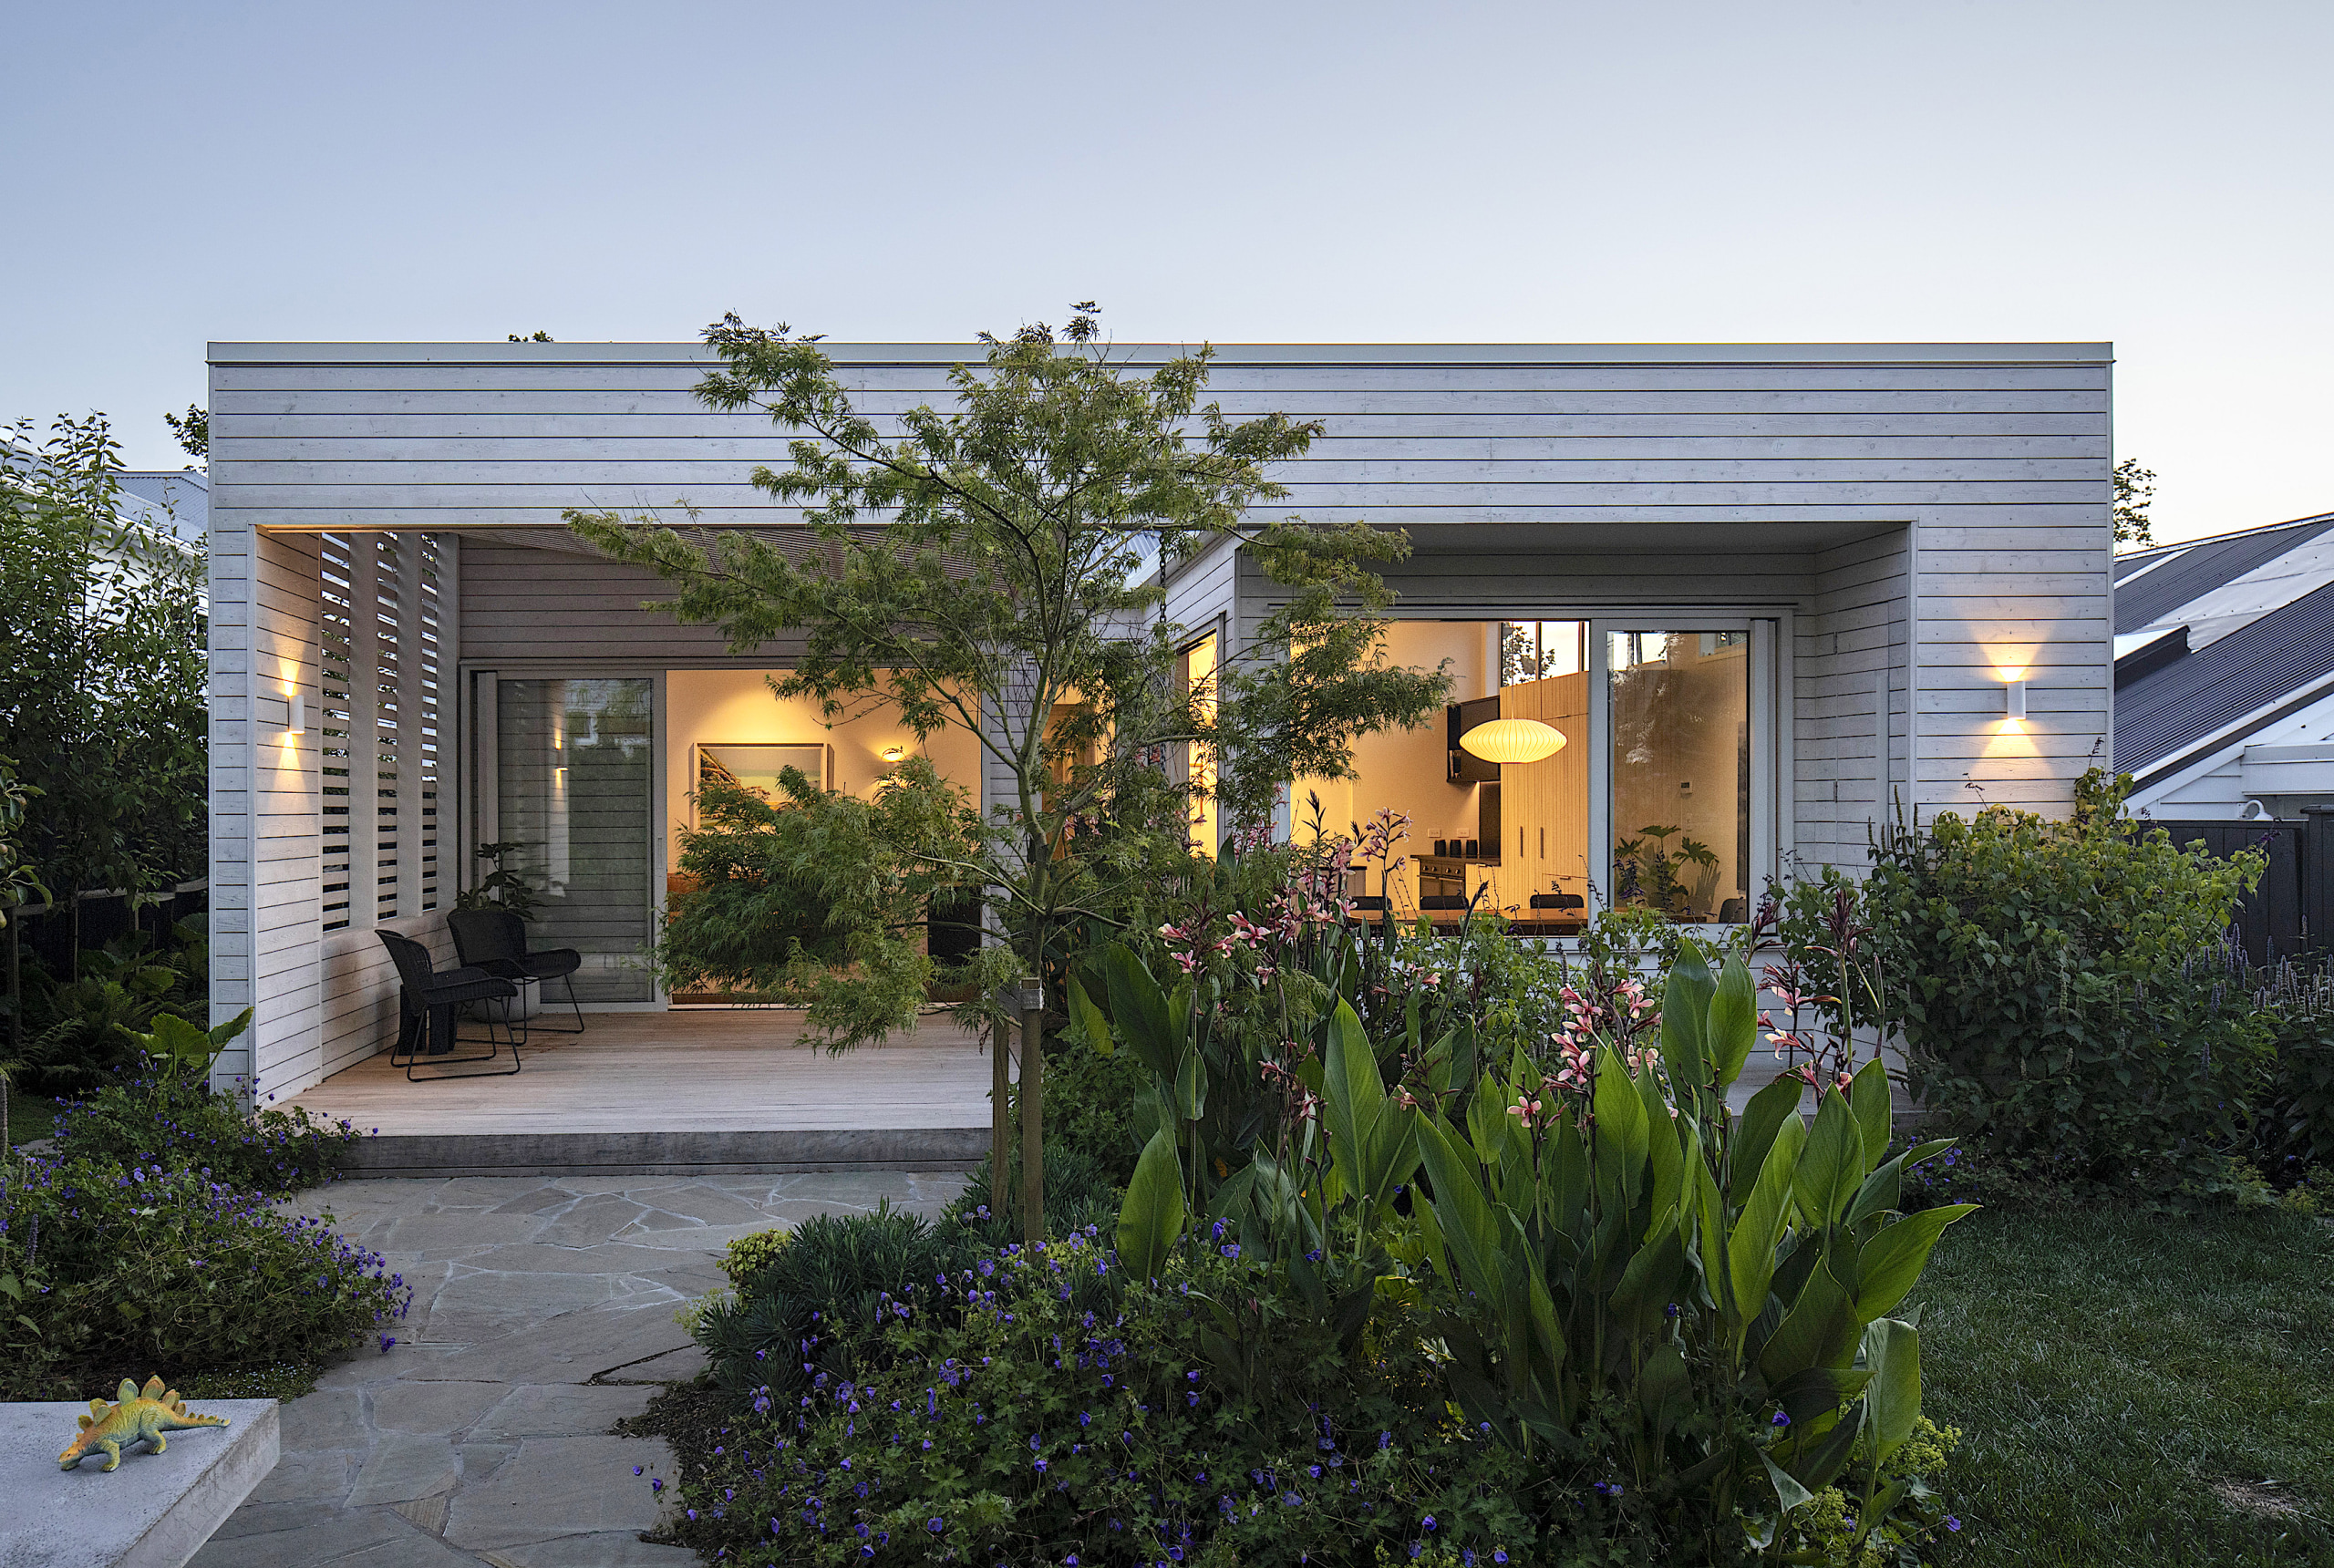 The architects have skilfully converted a traditional villa